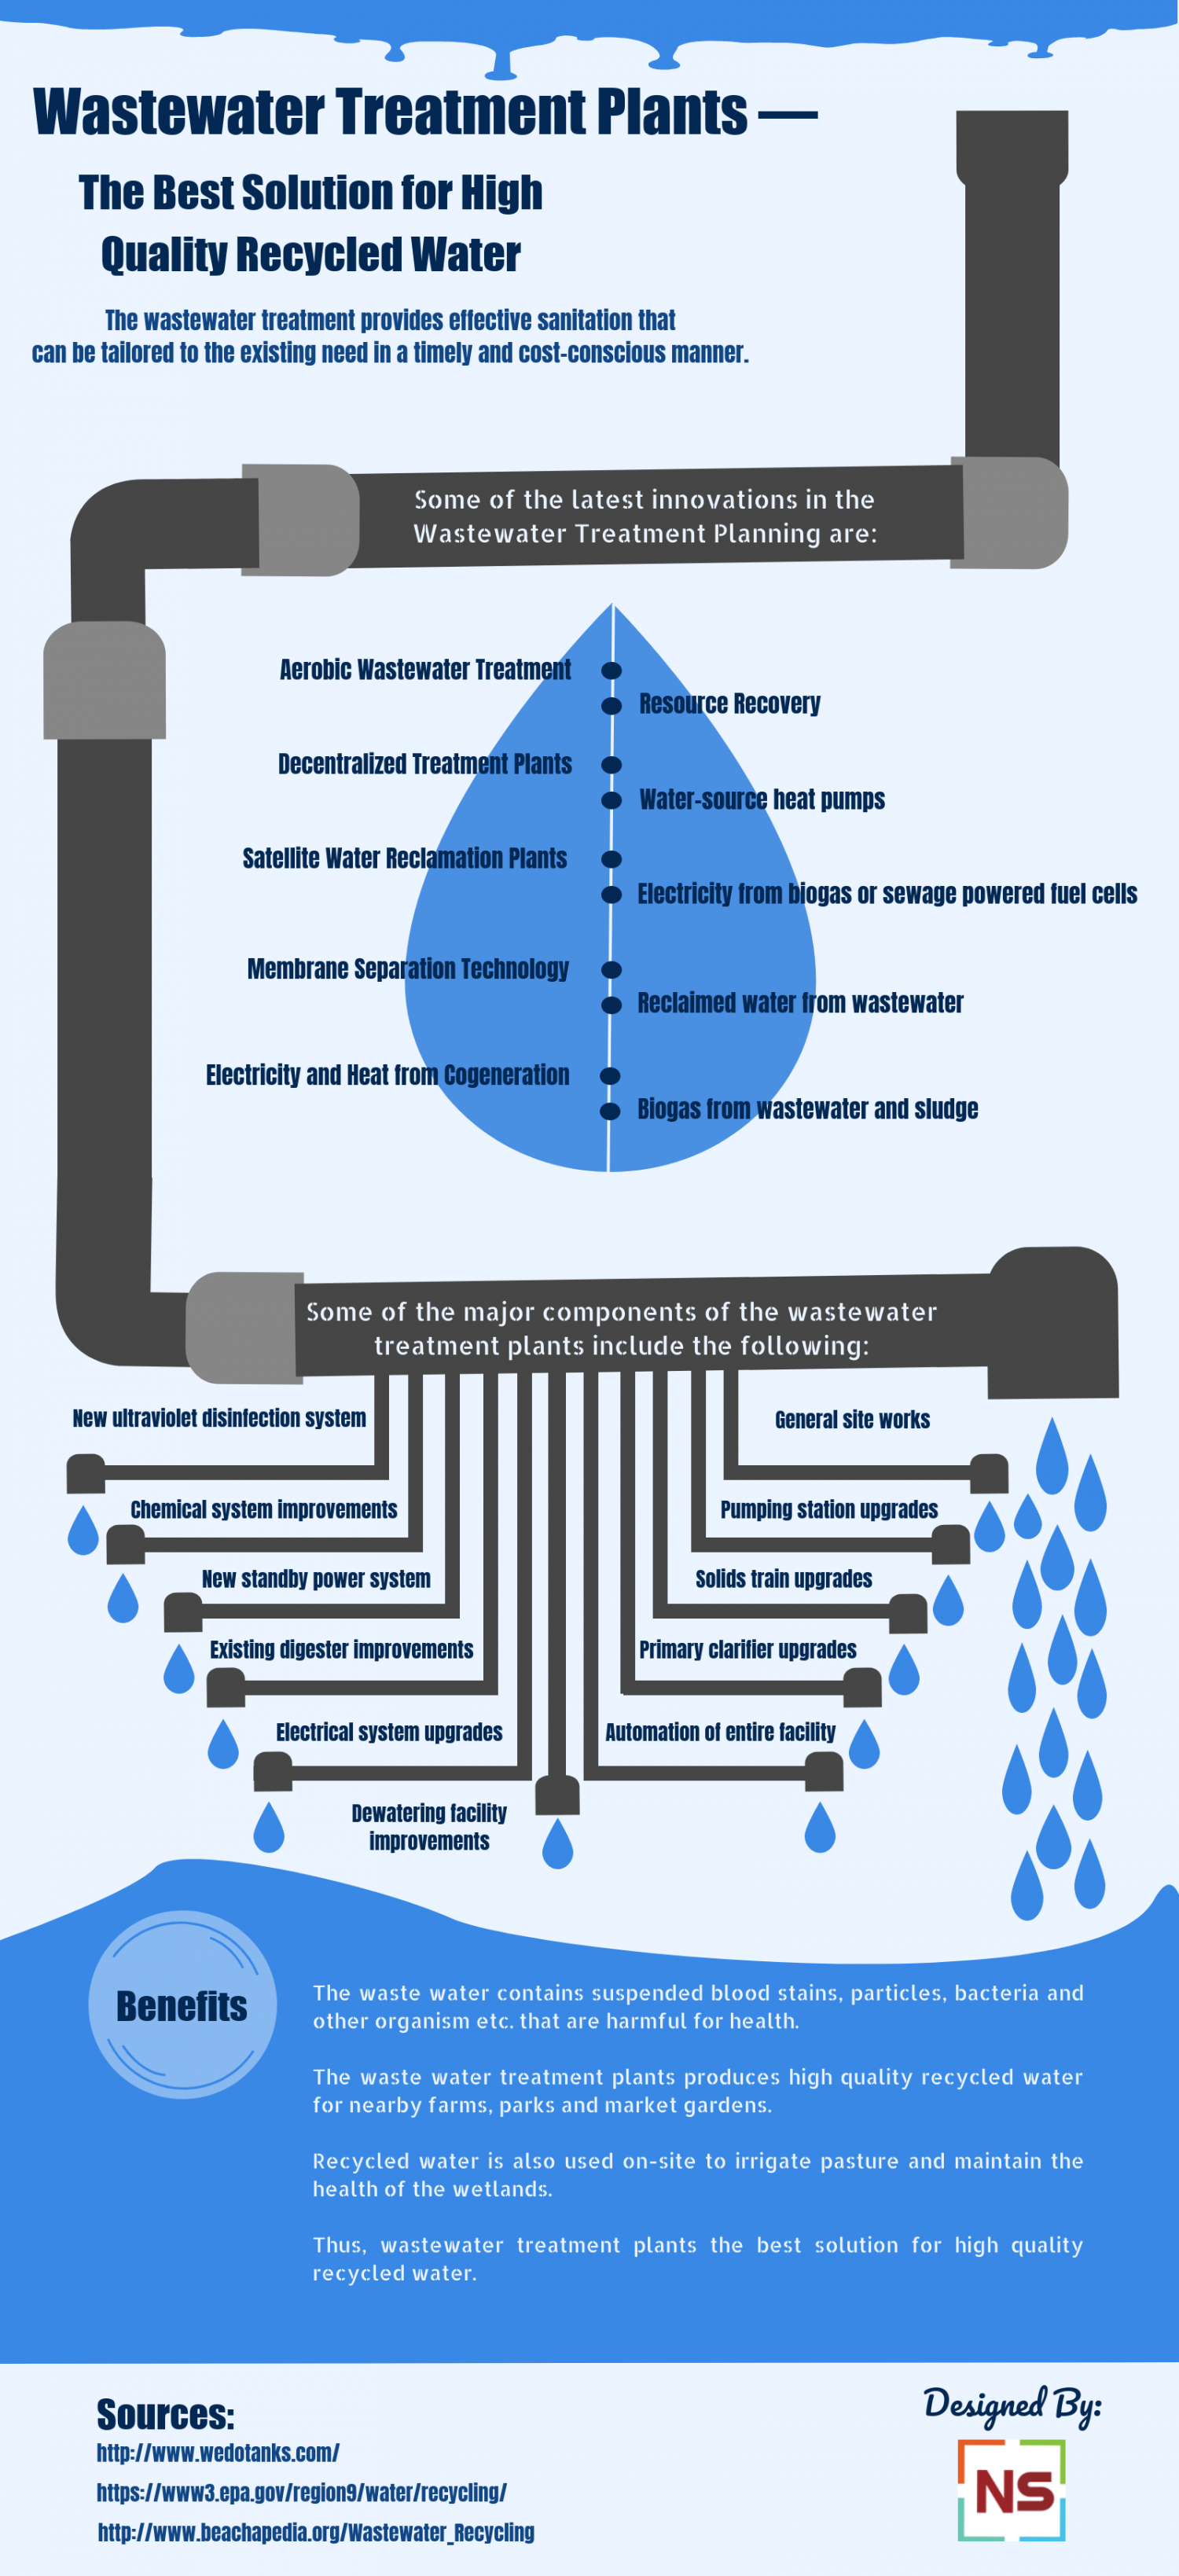 Wastewater Treatment Plants — the Best Solution for High Quality Recycled Water Infographic